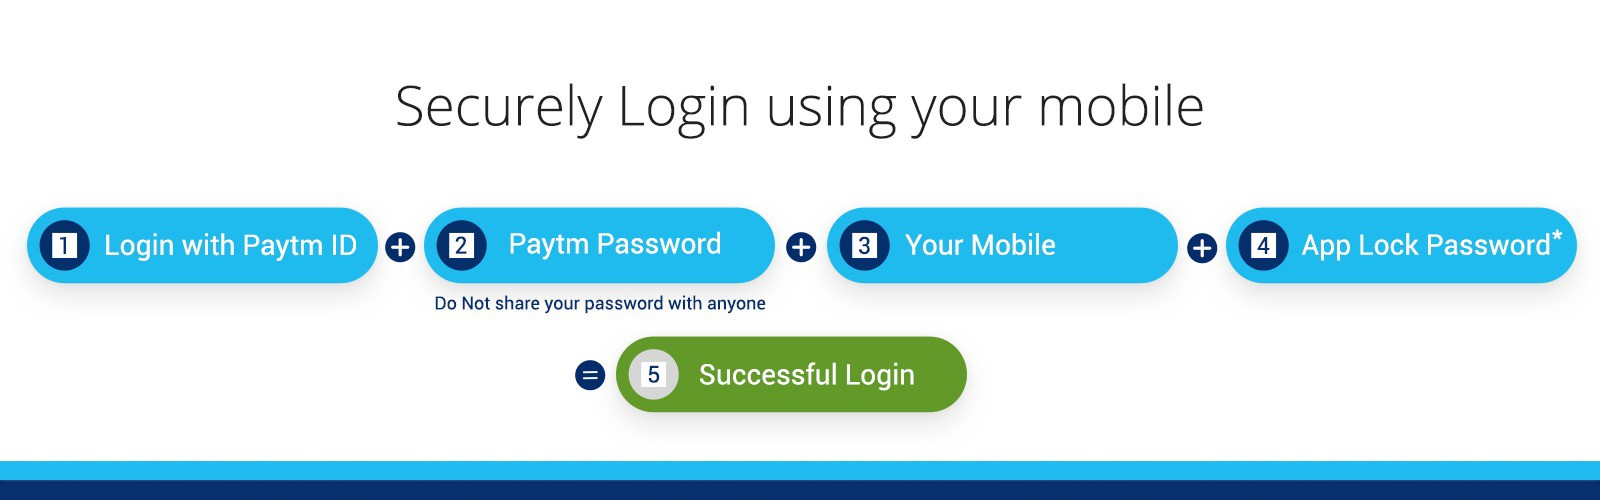 Your Paytm ID & Password is not enough to access Paytm